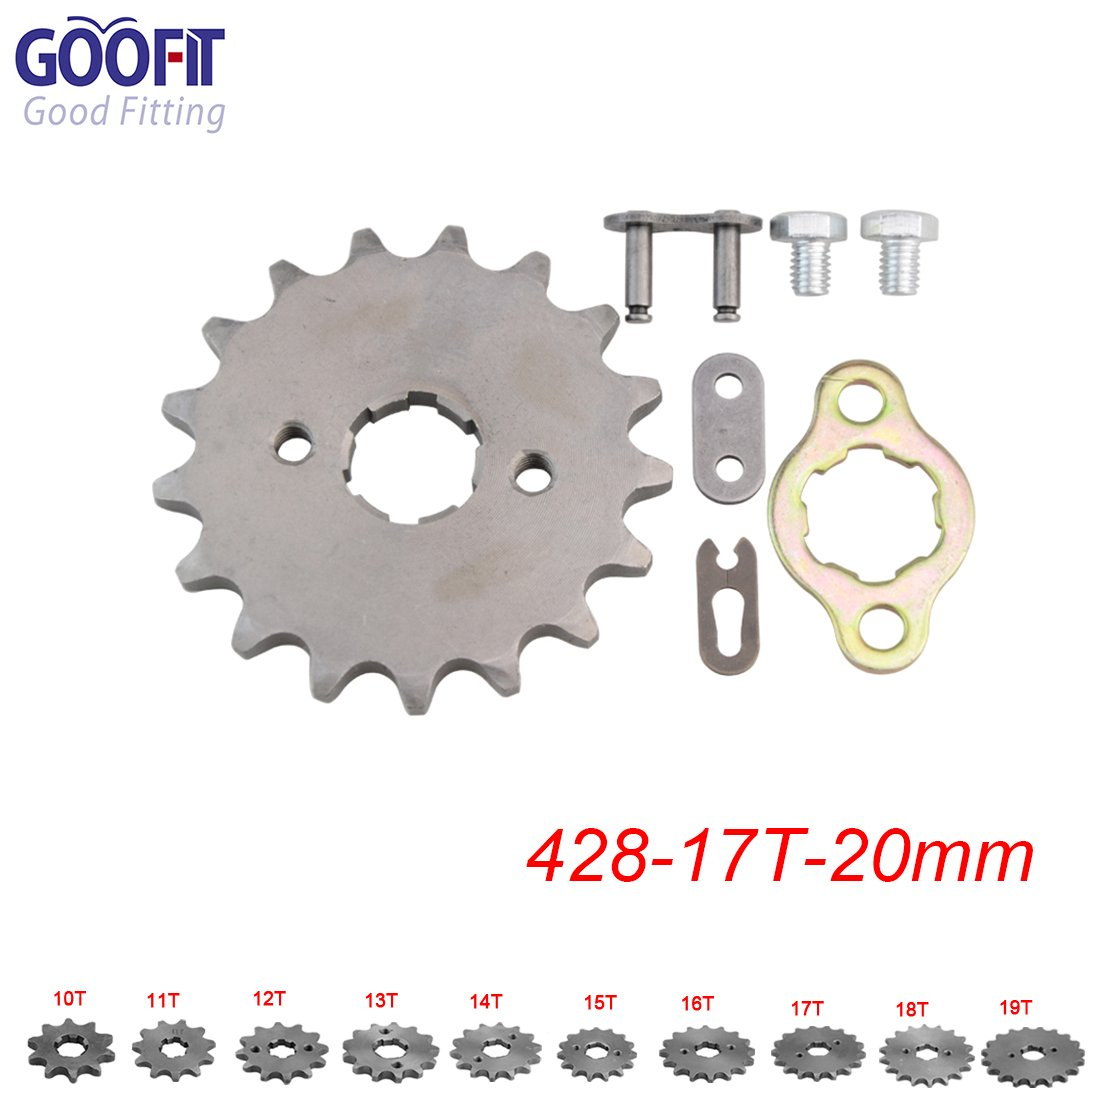 GOOFIT 428 14 20mm Tooth Front Engine motorcycle Sprocket Chain Retainer Plate LockerEngine For 50cc 70cc 90cc 110cc Motorcycle Dirt Bike ATV Quad